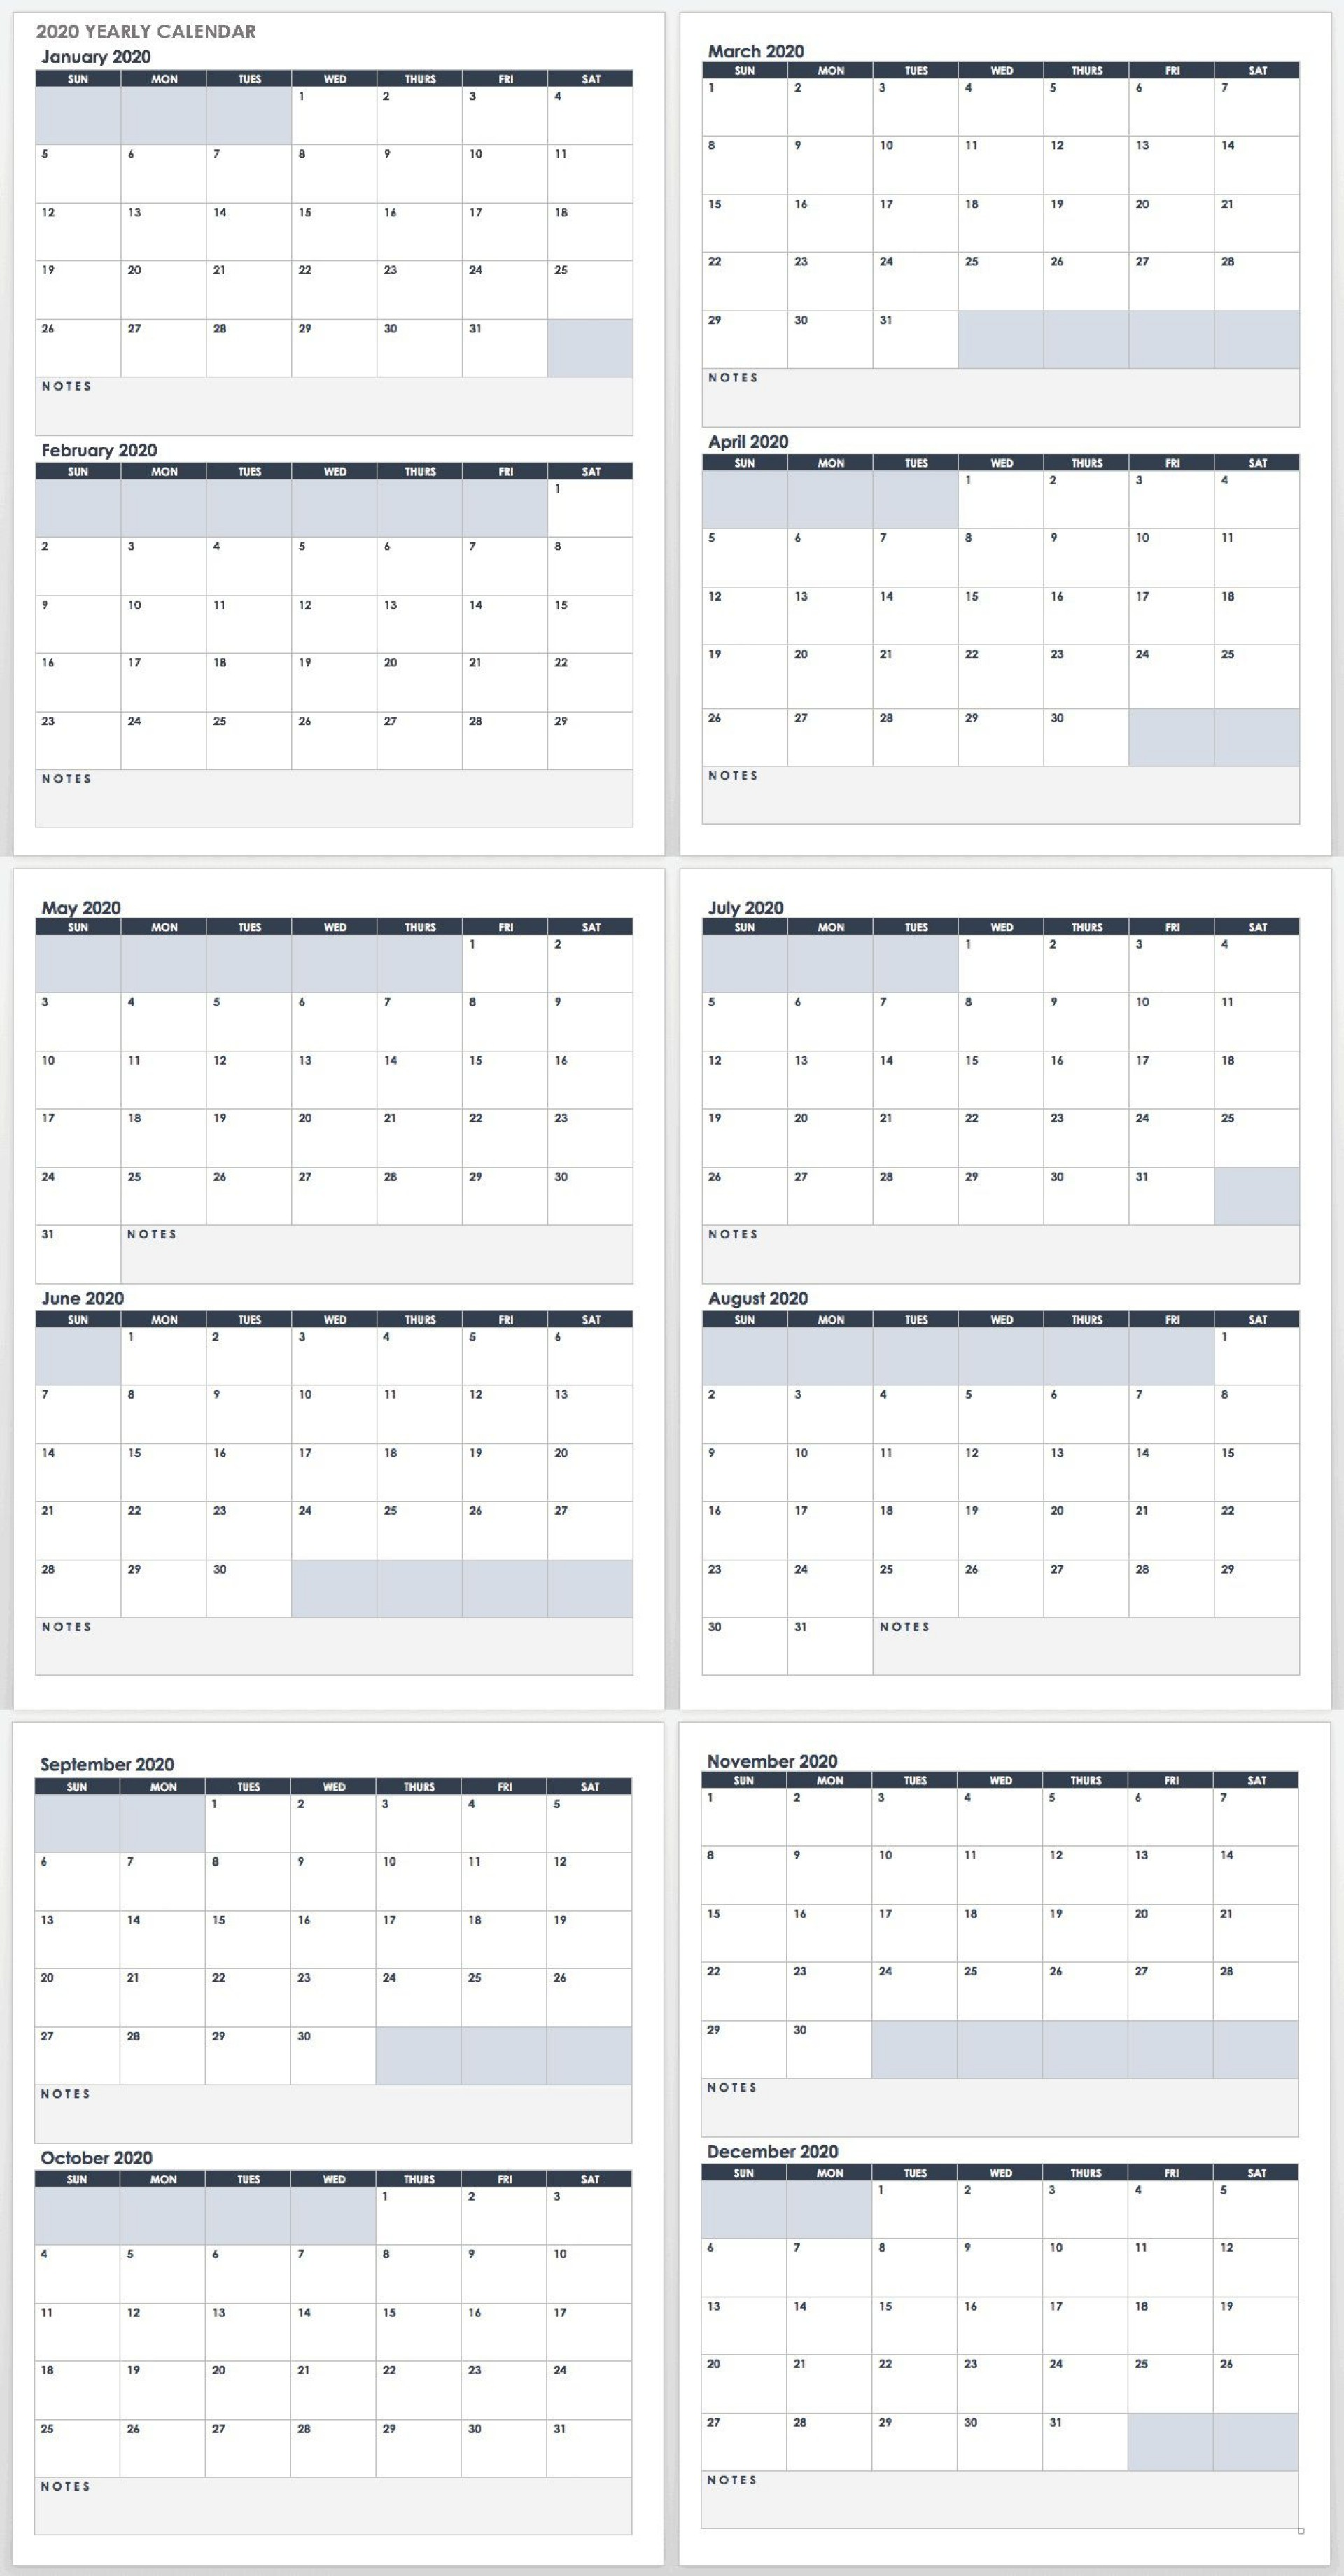 008 Remarkable Google Sheet Calendar Template 2020 Idea  Monthly And 2021 2020-211920